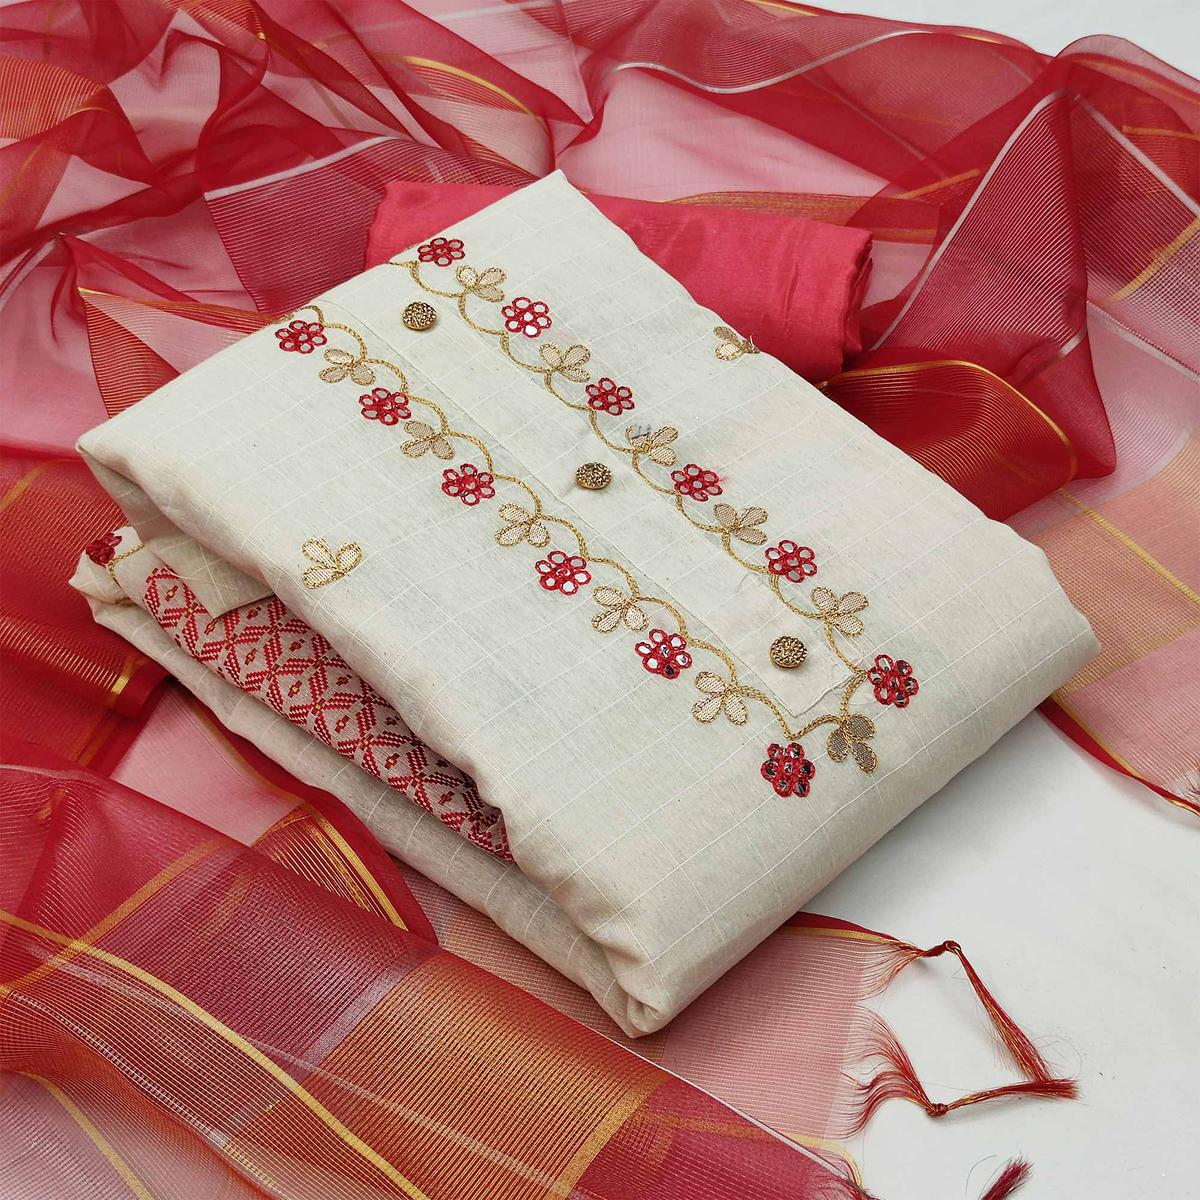 Sophisticated White - Red Colored Partywear Embroidered Modal Chanderi Jacquard Dress Material